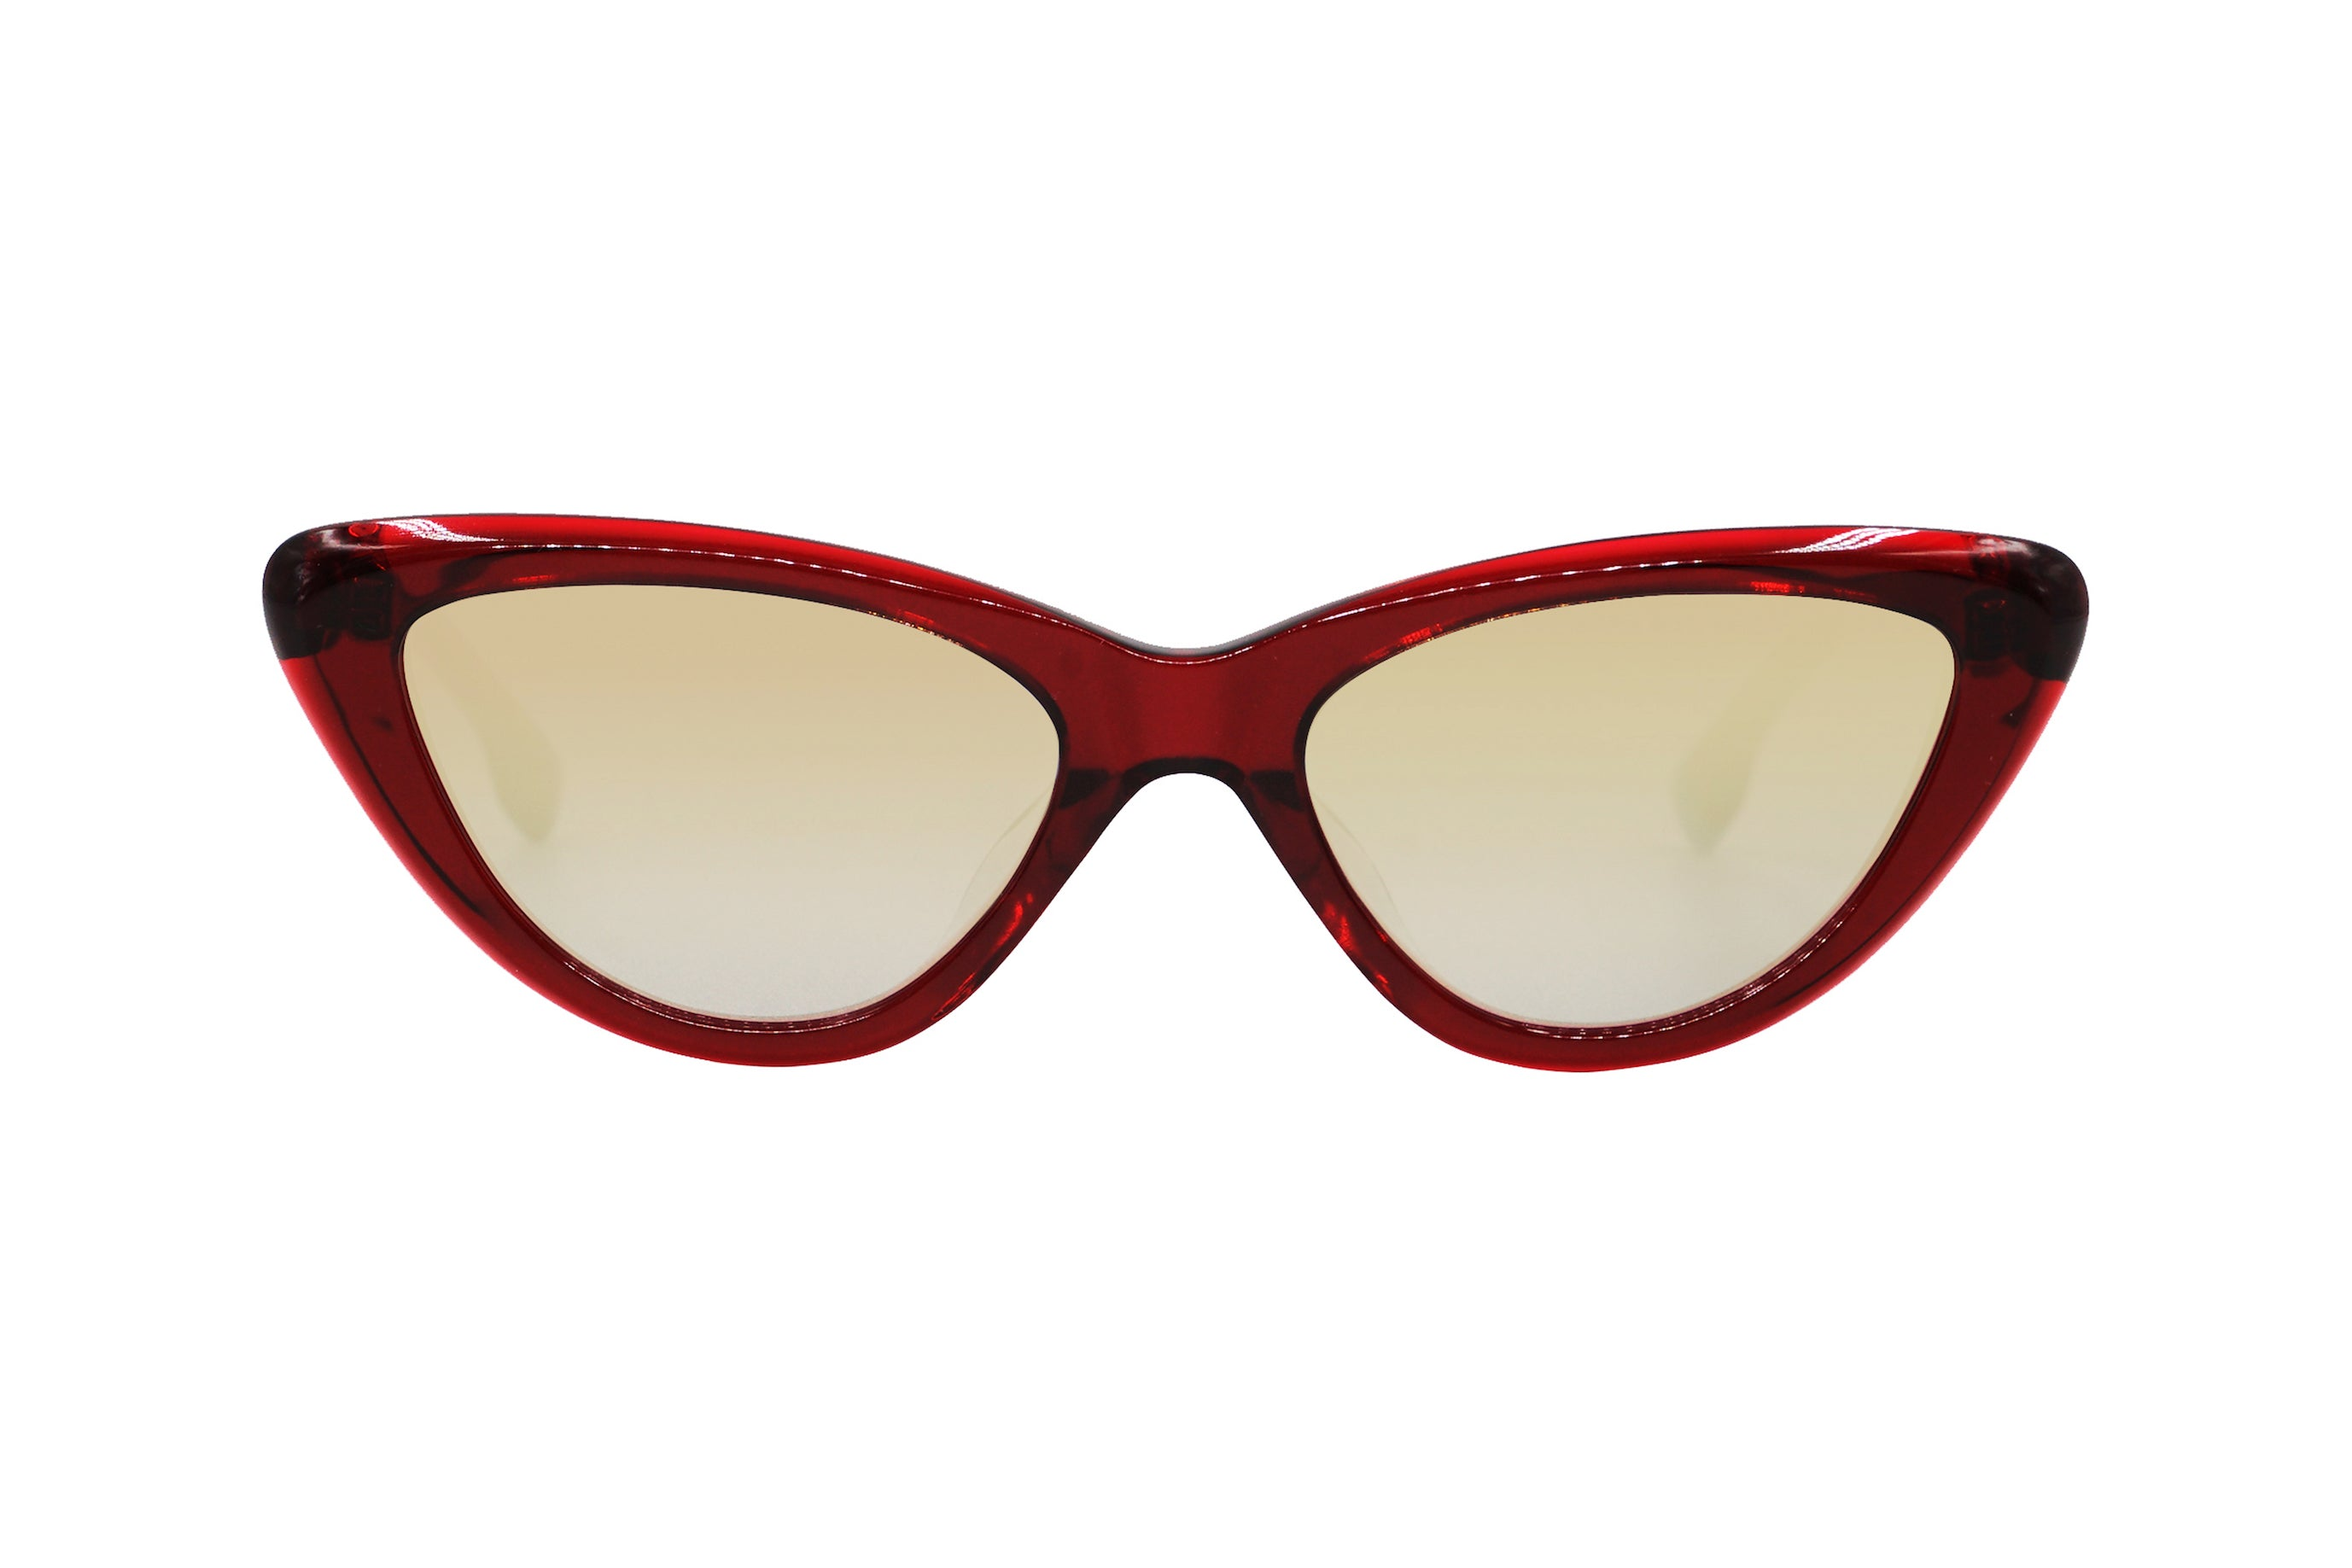 Beverly in Red - Peppertint - Designer sunglasses